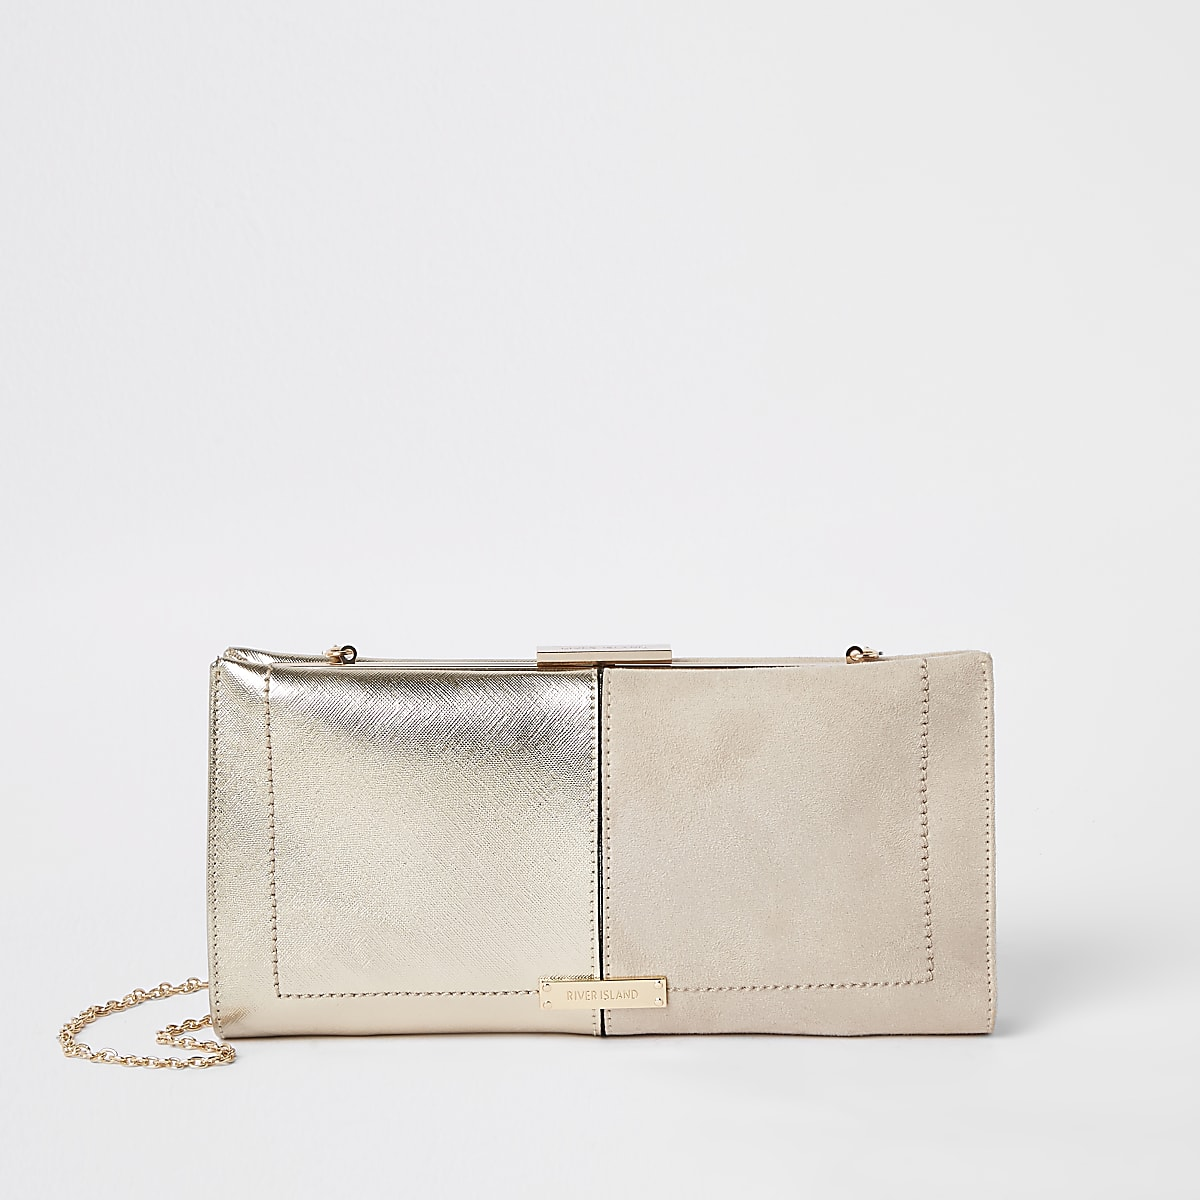 Beige metallic clutch met druksluiting